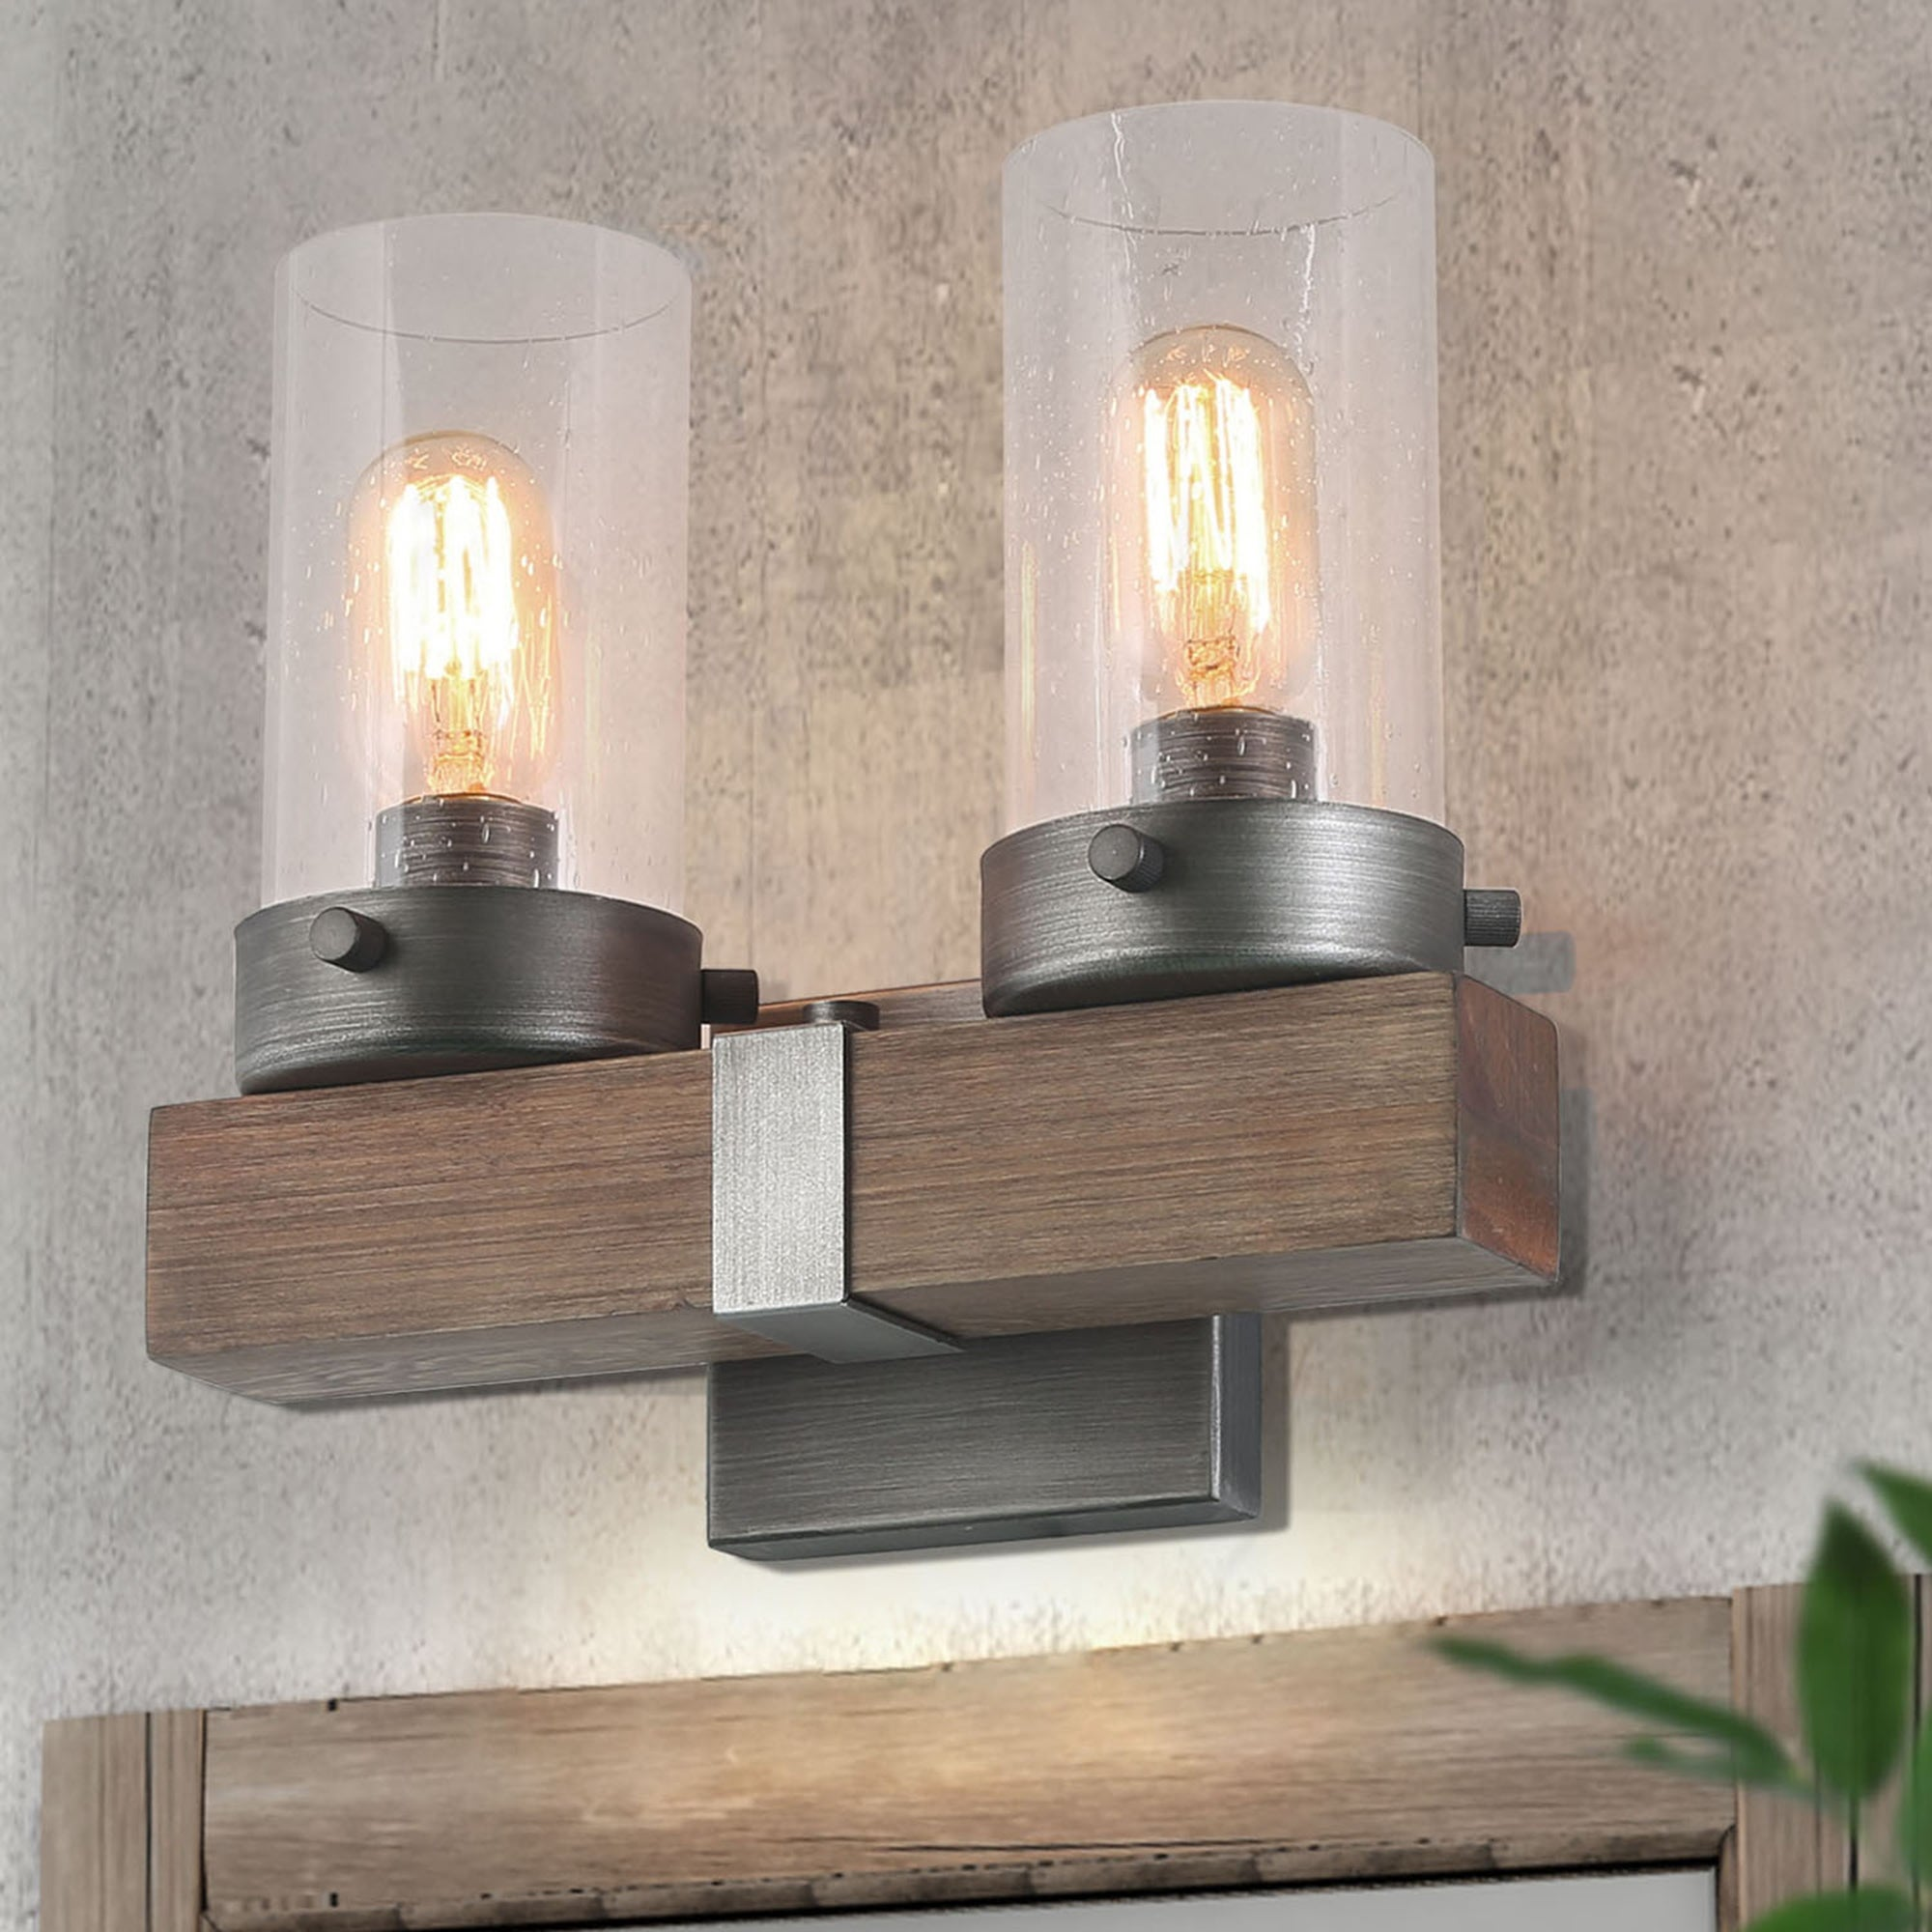 Modern 2 Lights Wood Vanity Light Wall Sconce By Havenside Home L11 8 X W5 9 X H10 6 Overstock 28637241